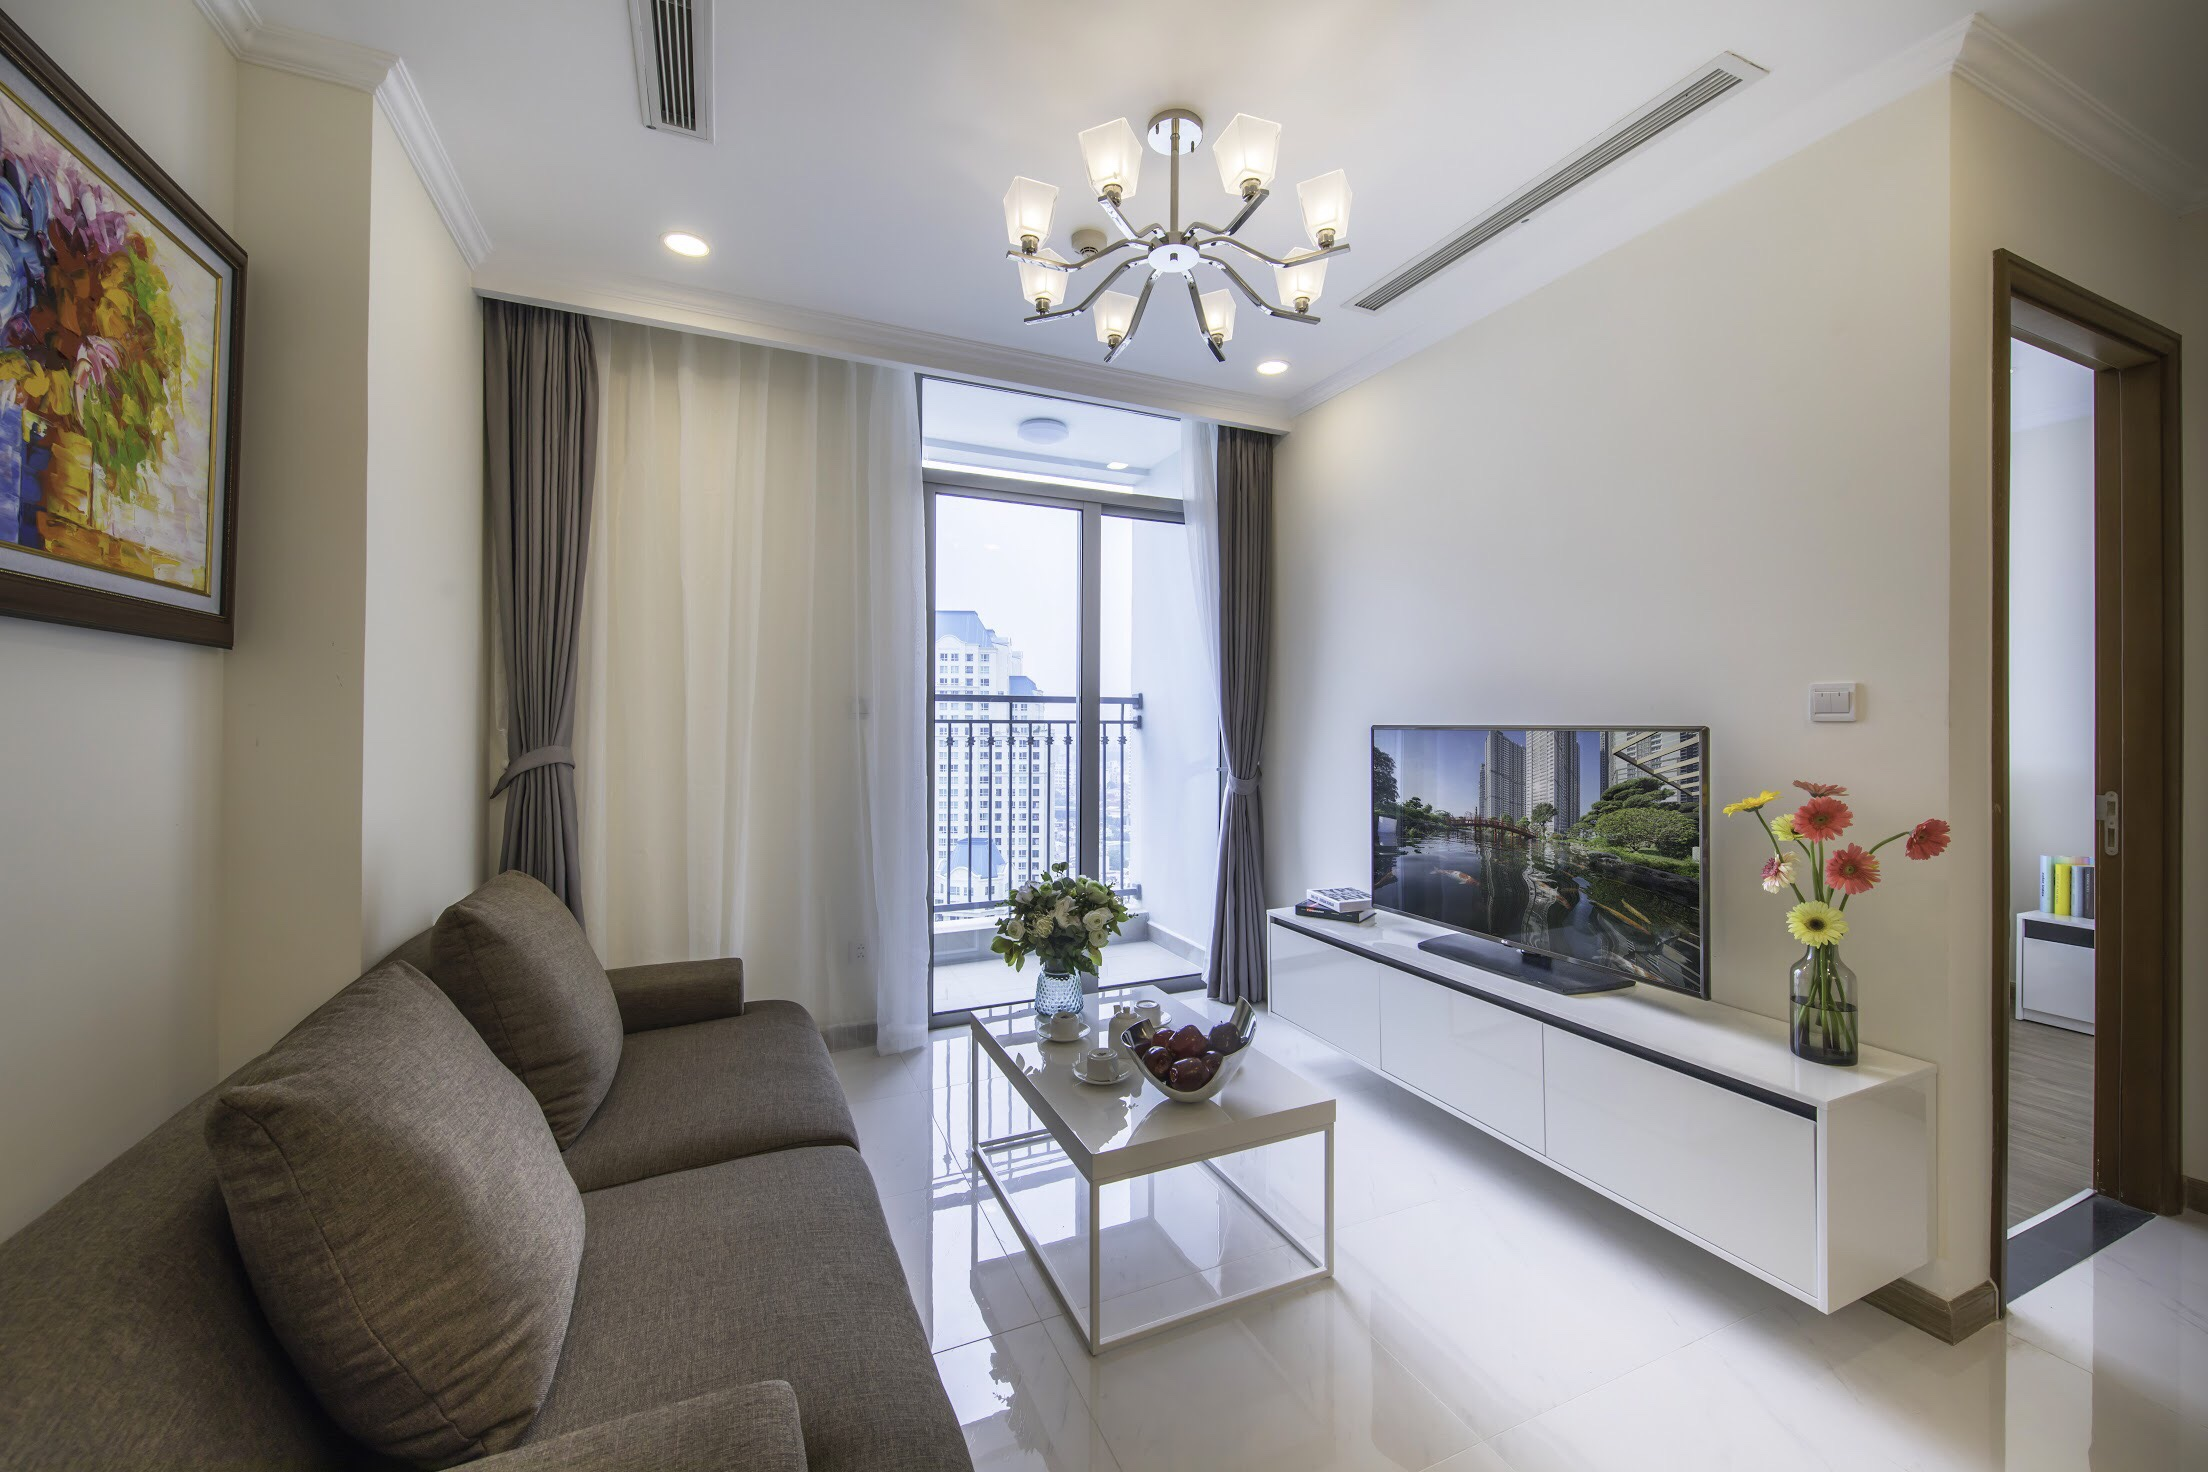 vinhomes central park apartment for rent in binh thanh district hcmc BT105L533 (3)